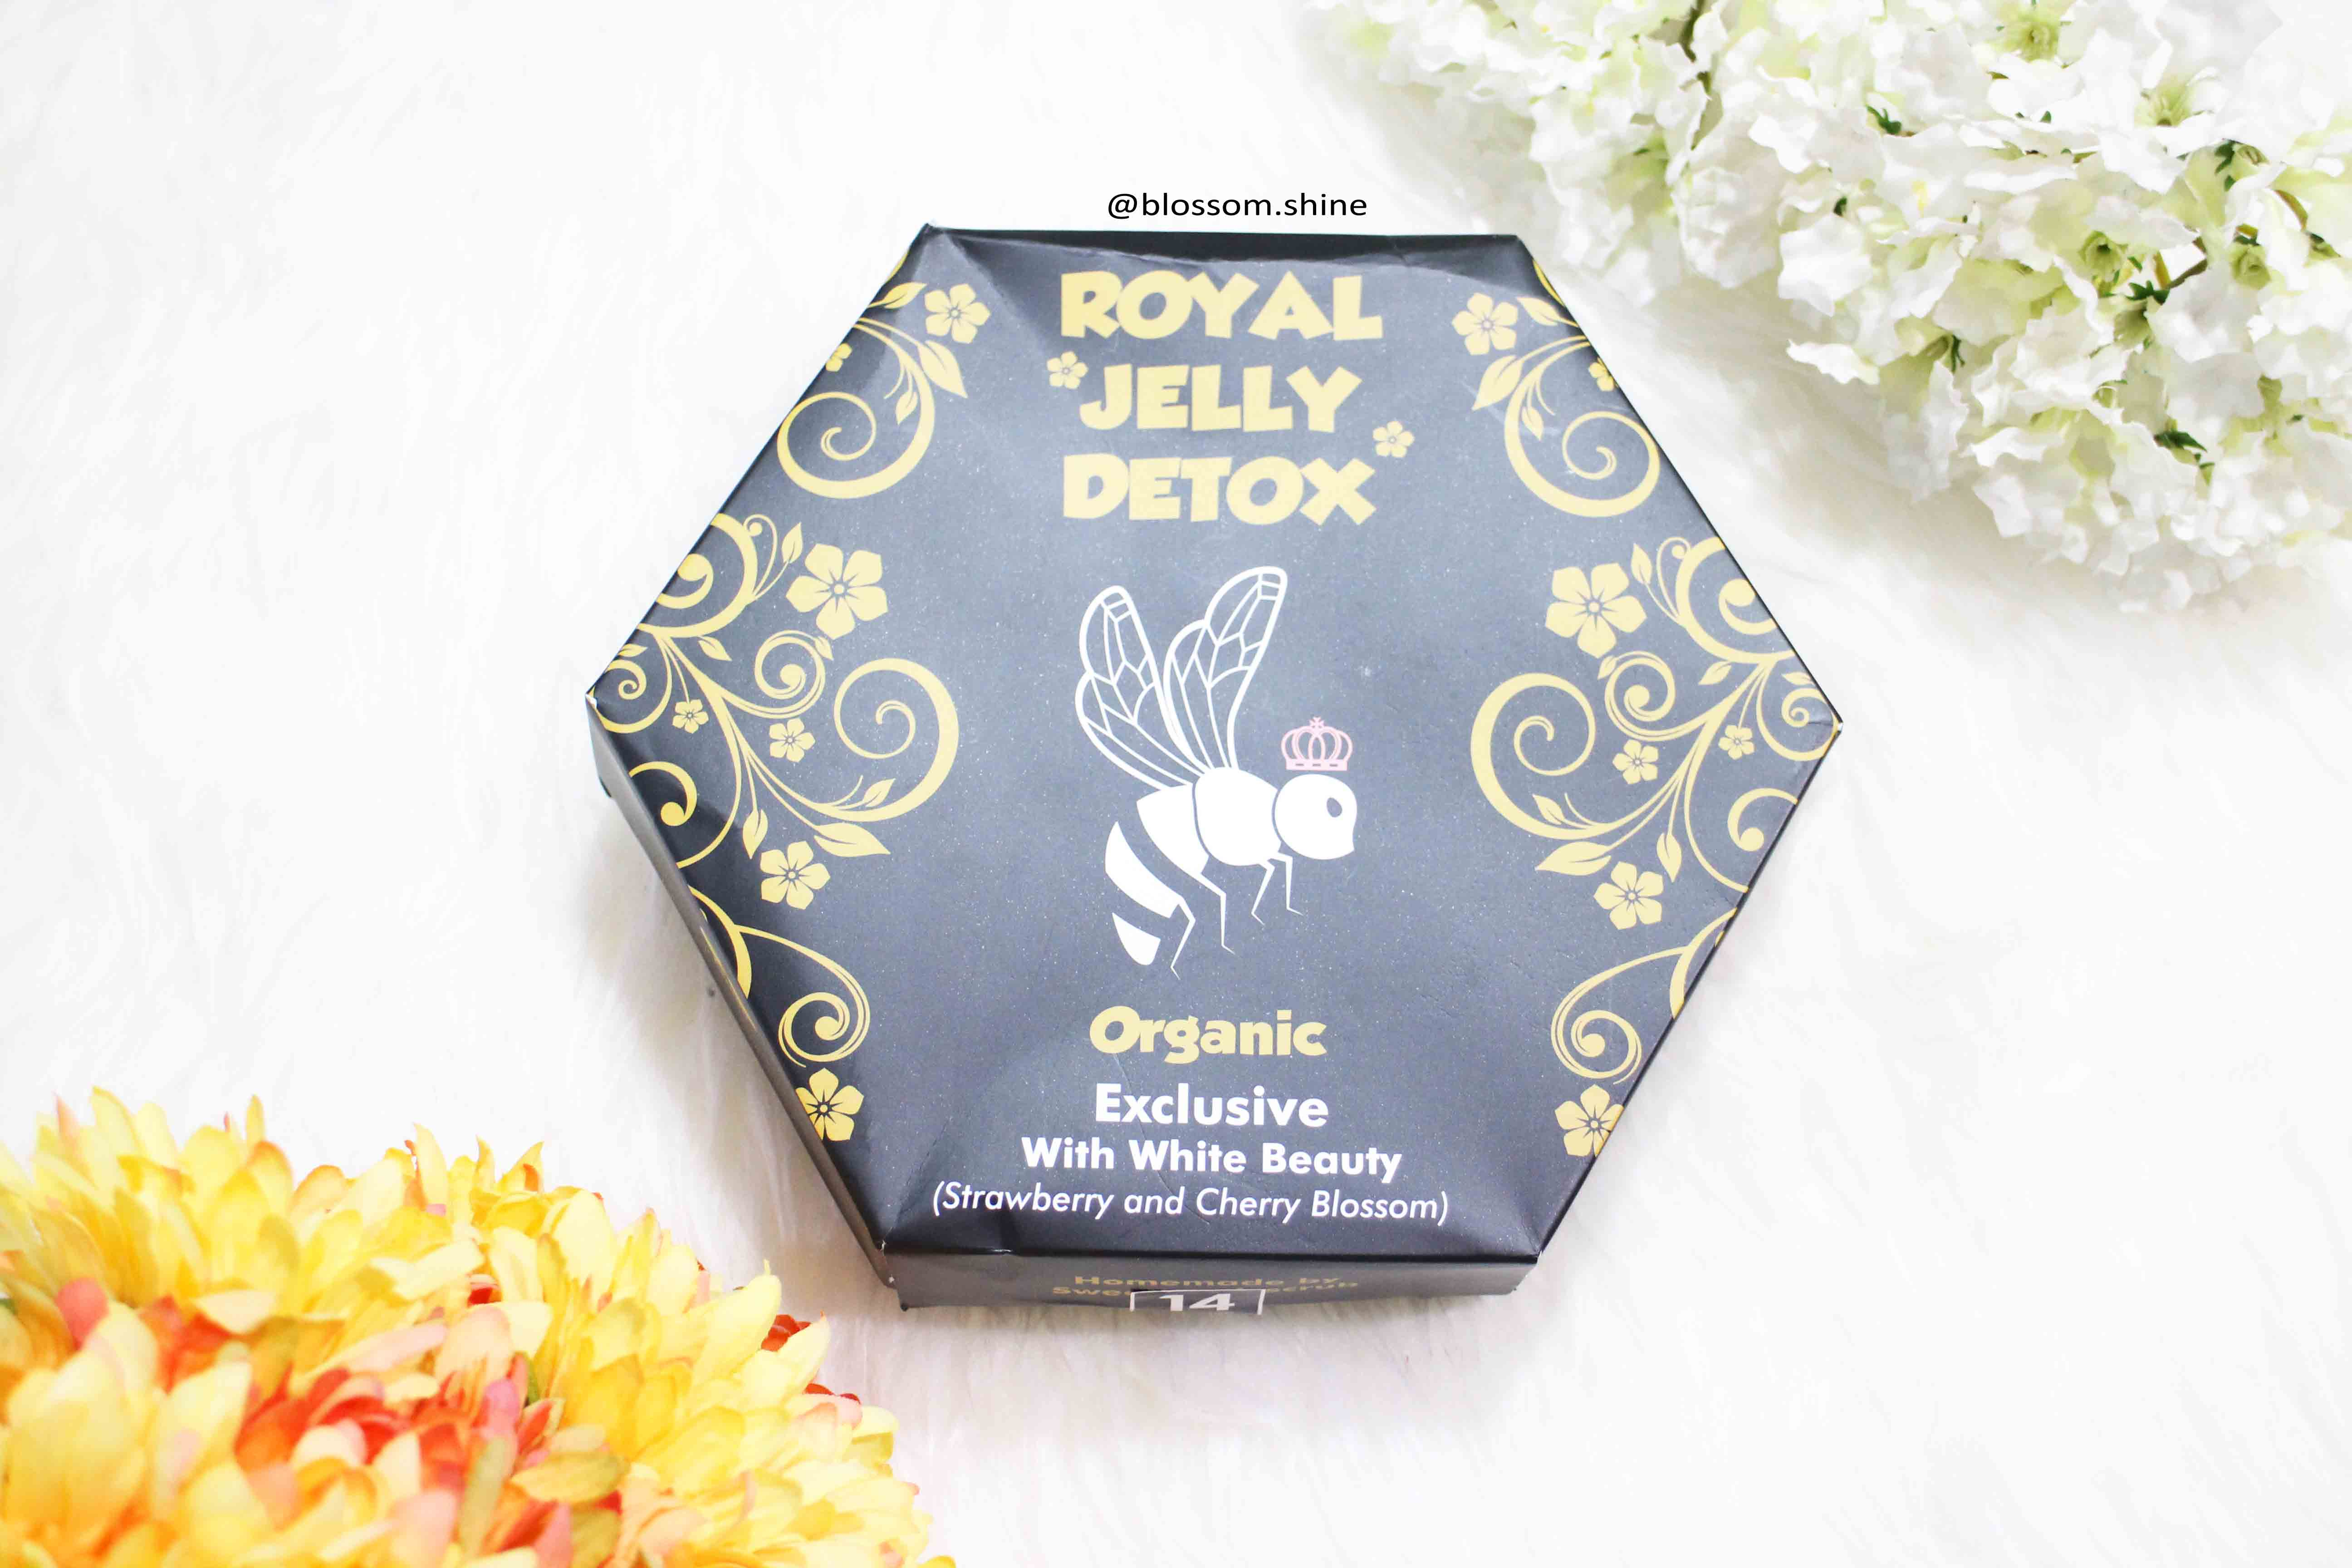 Royal Jelly Detox [Skincare Review]